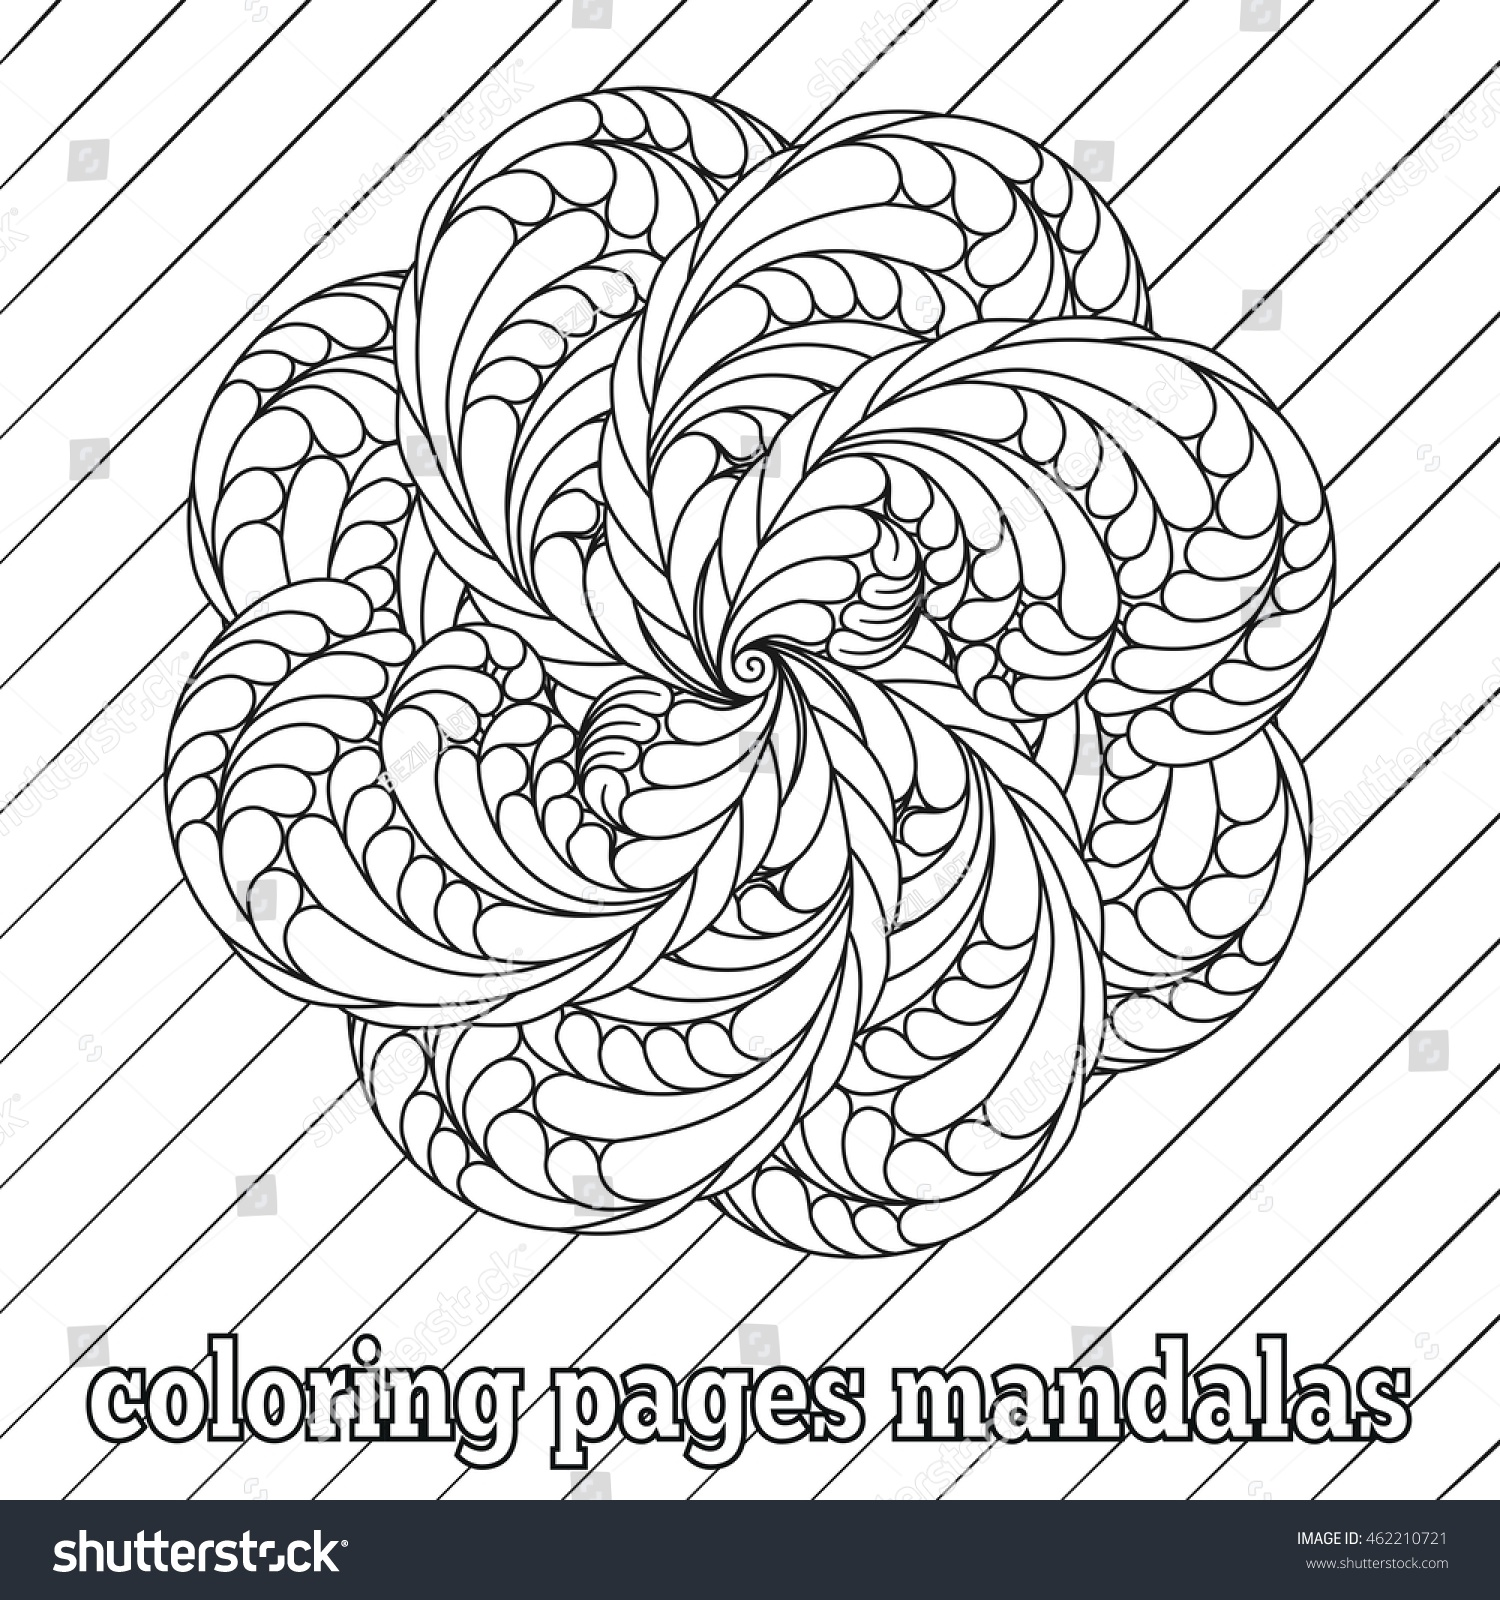 Colouring in pages abstract patterns - Coloring Pages For Adults And Older Children Vector Floral Mandala Patterns Abstract